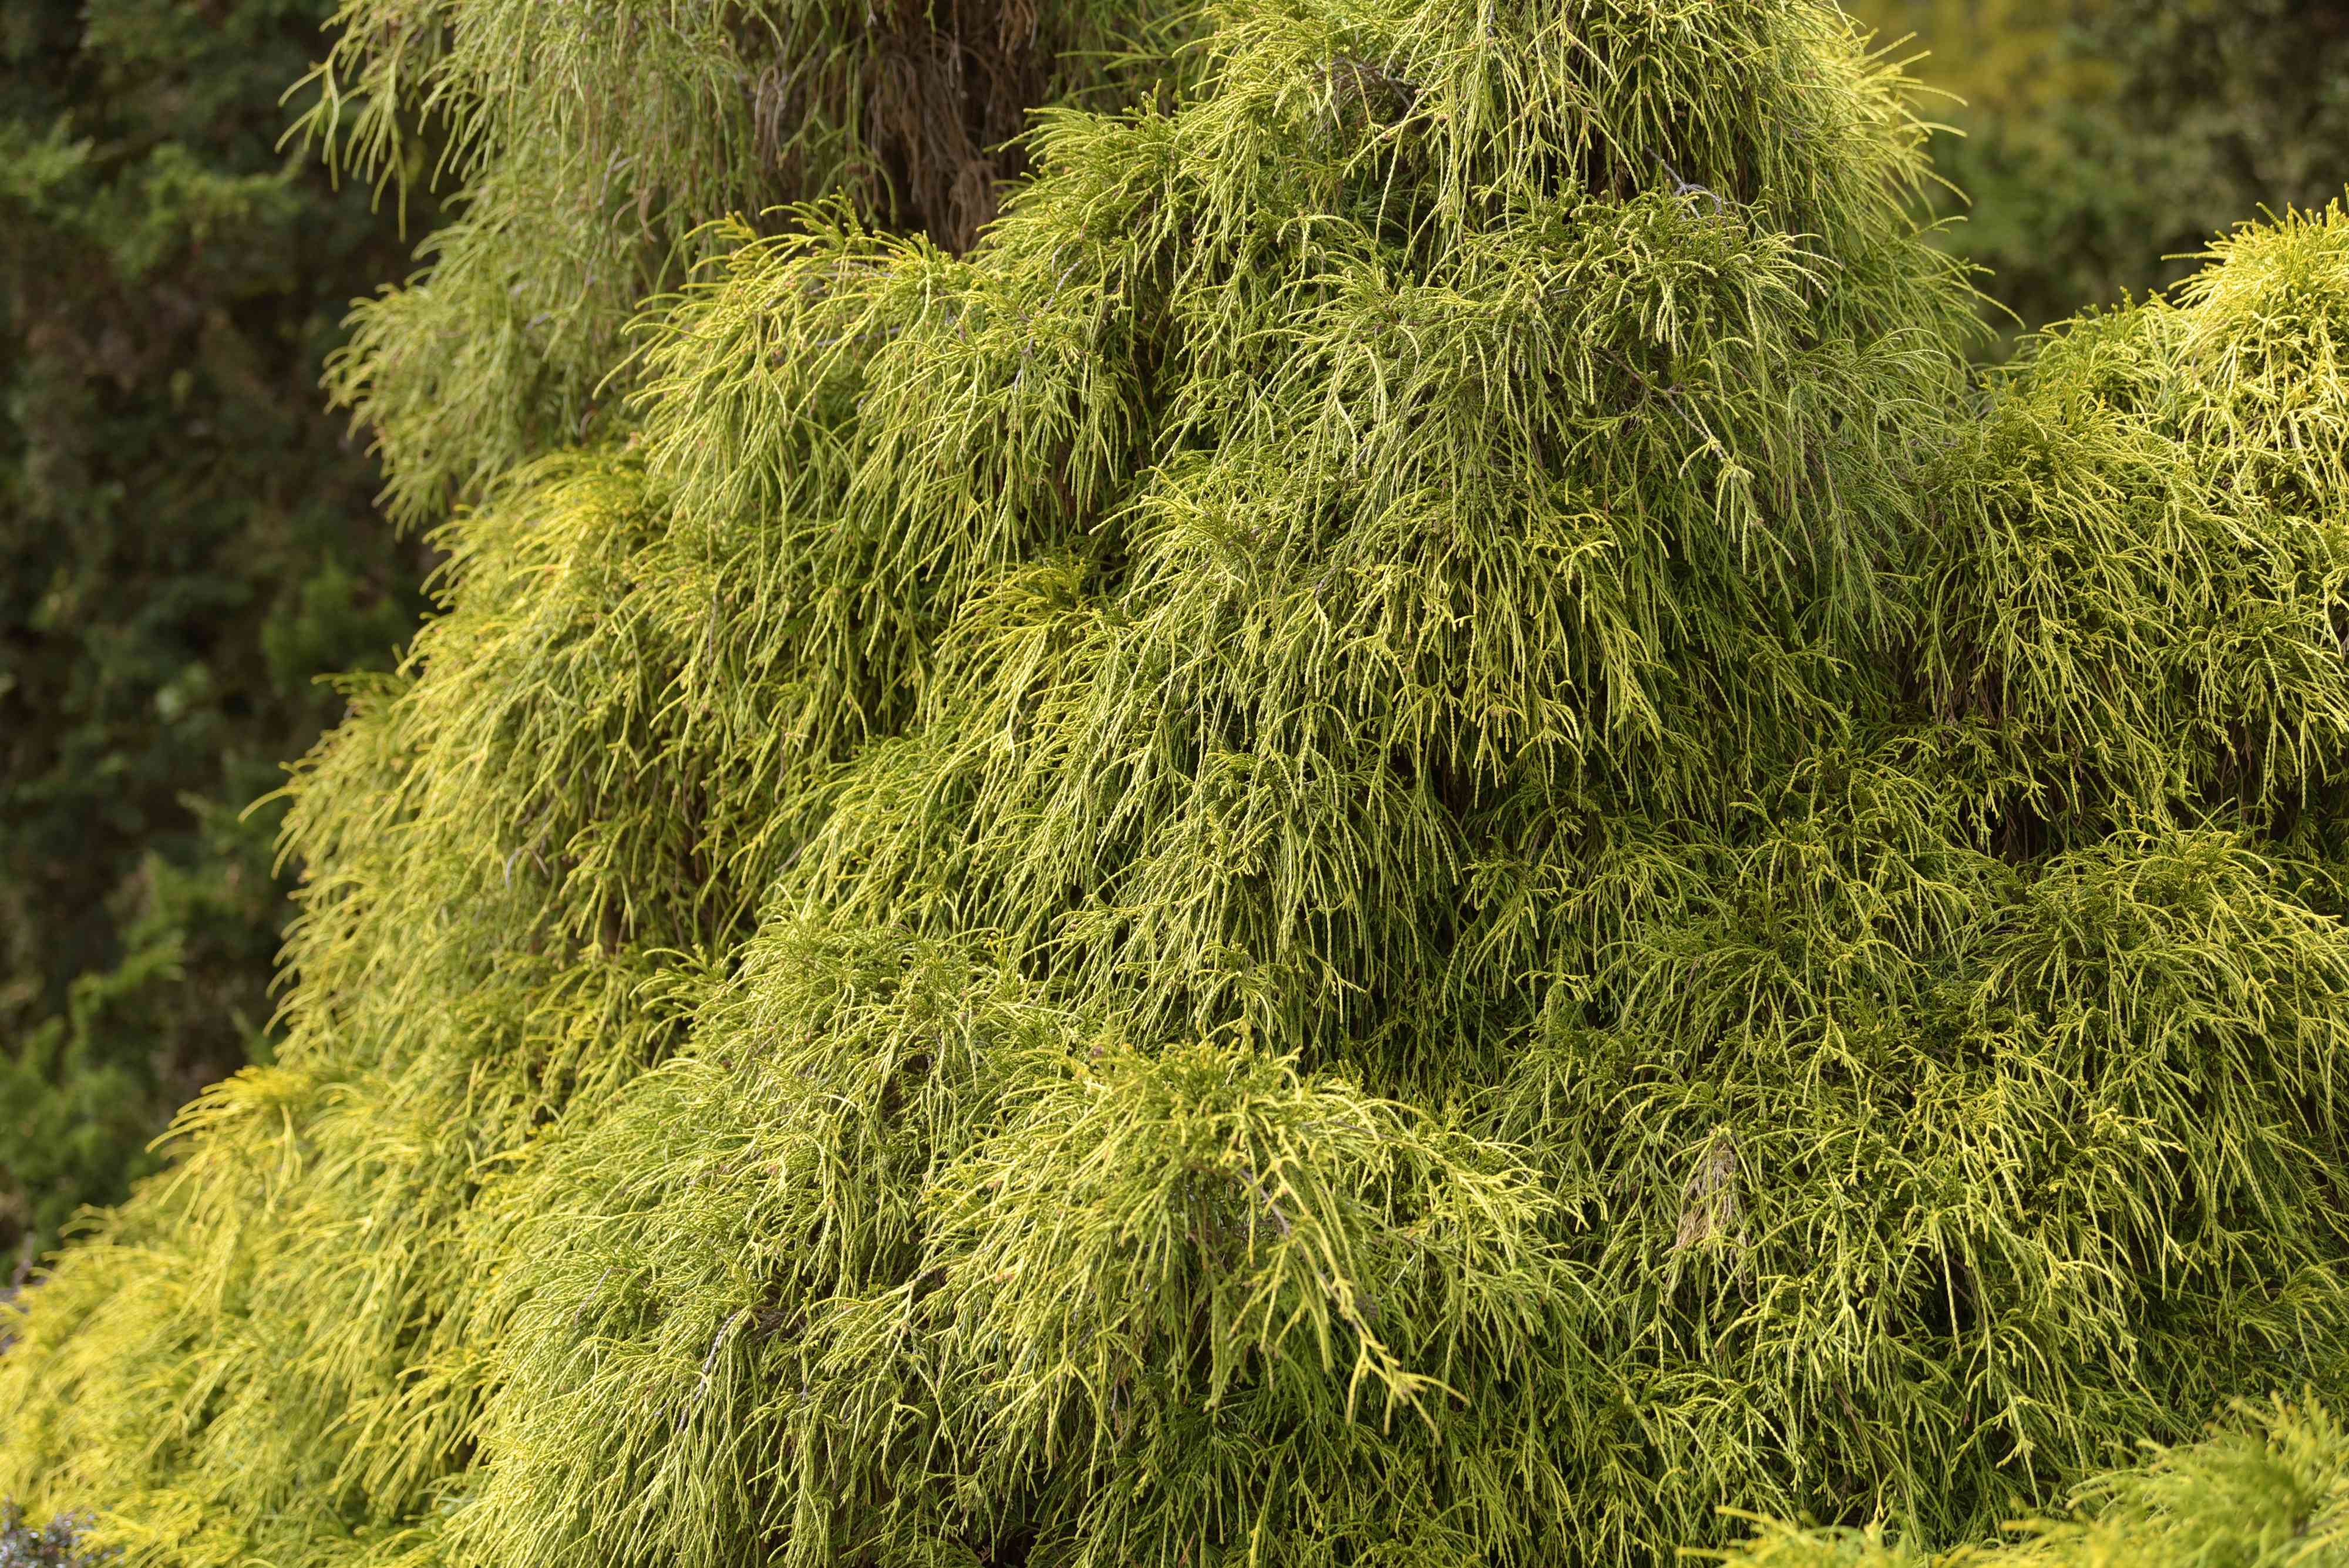 Threadleaf false cypress shrub with yellow-green and stringy branches